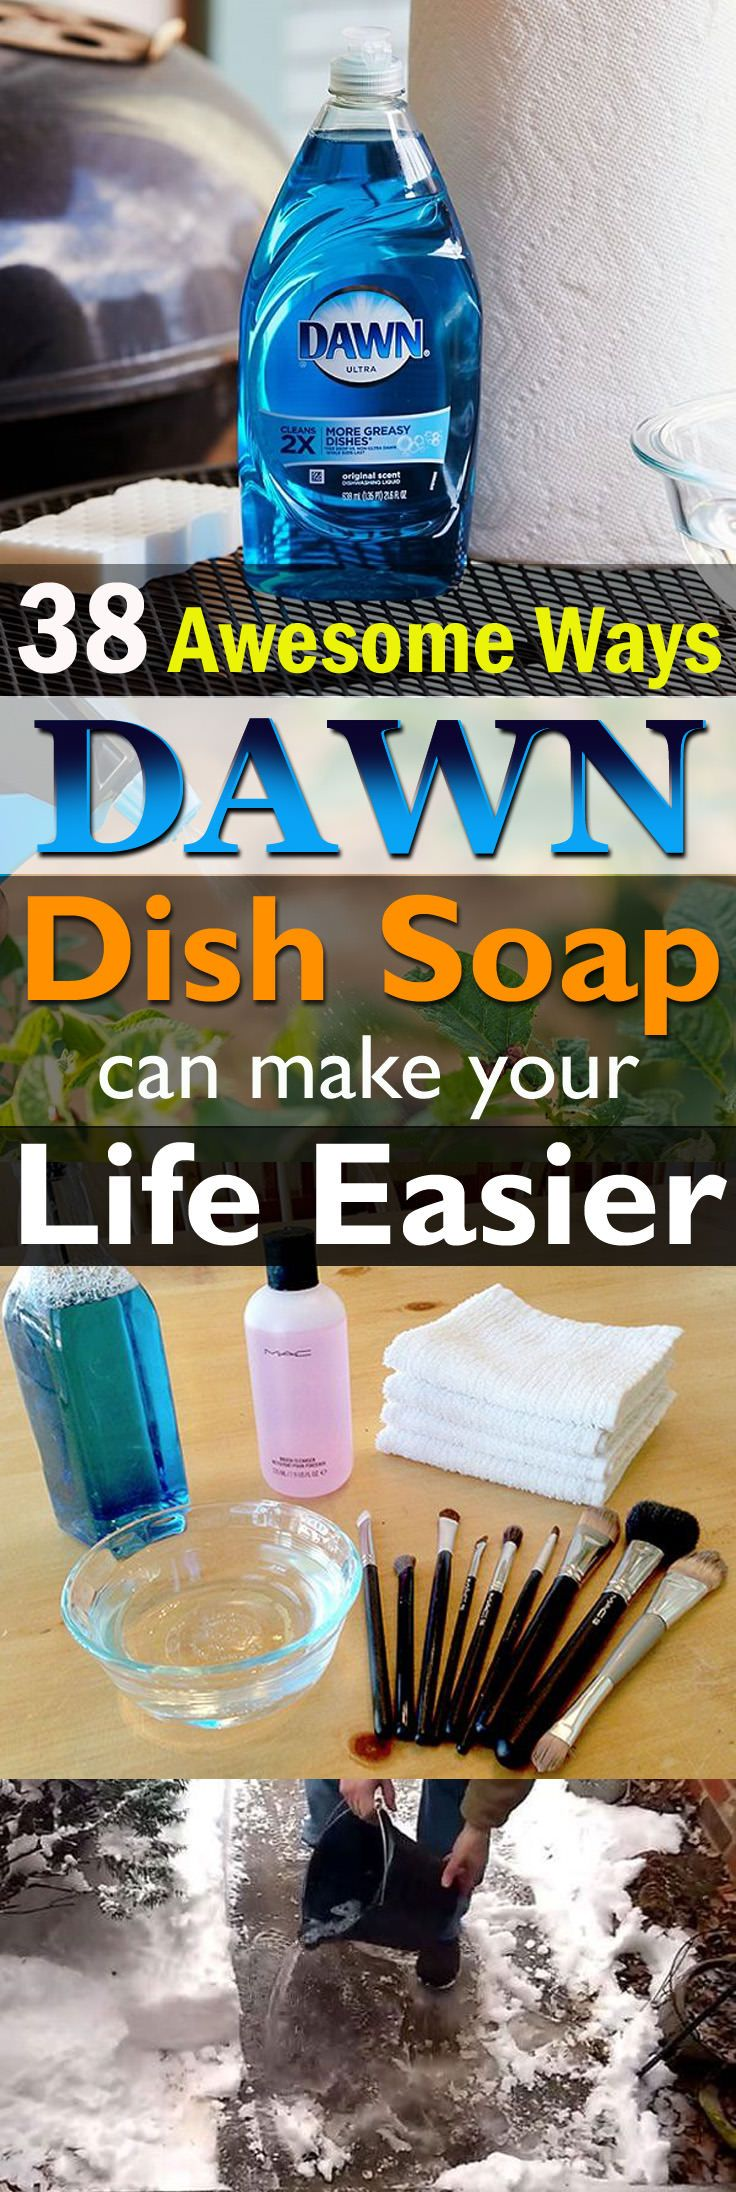 These Dawn Dish Soap uses are so effective, can save your time and money and make your life easier!